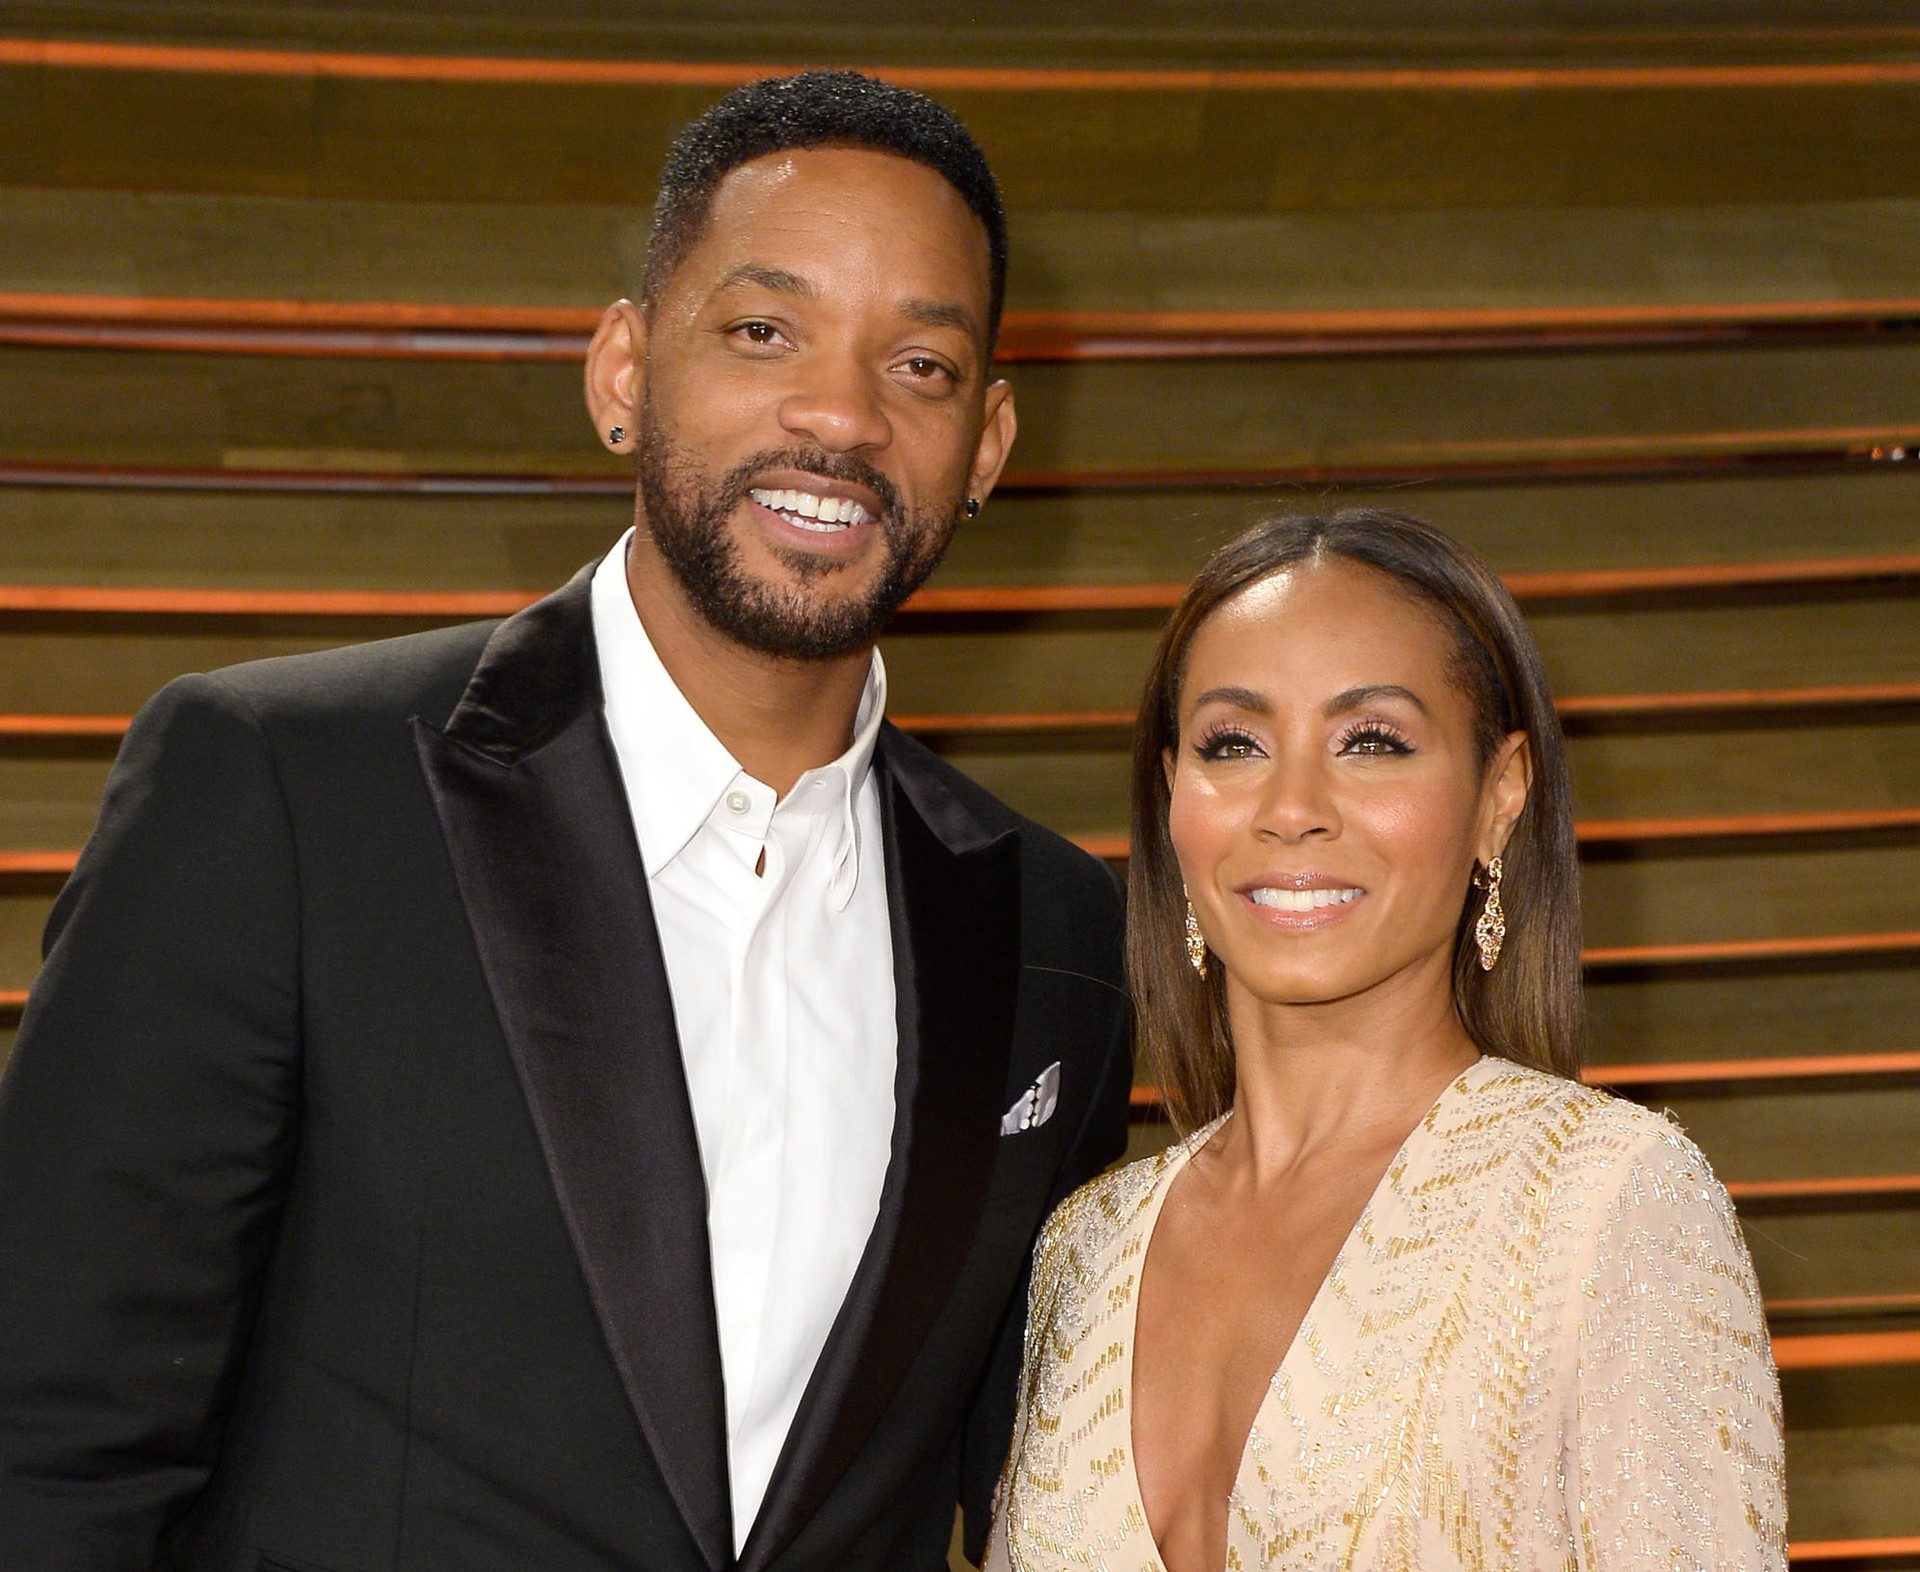 how did wil and jada meet